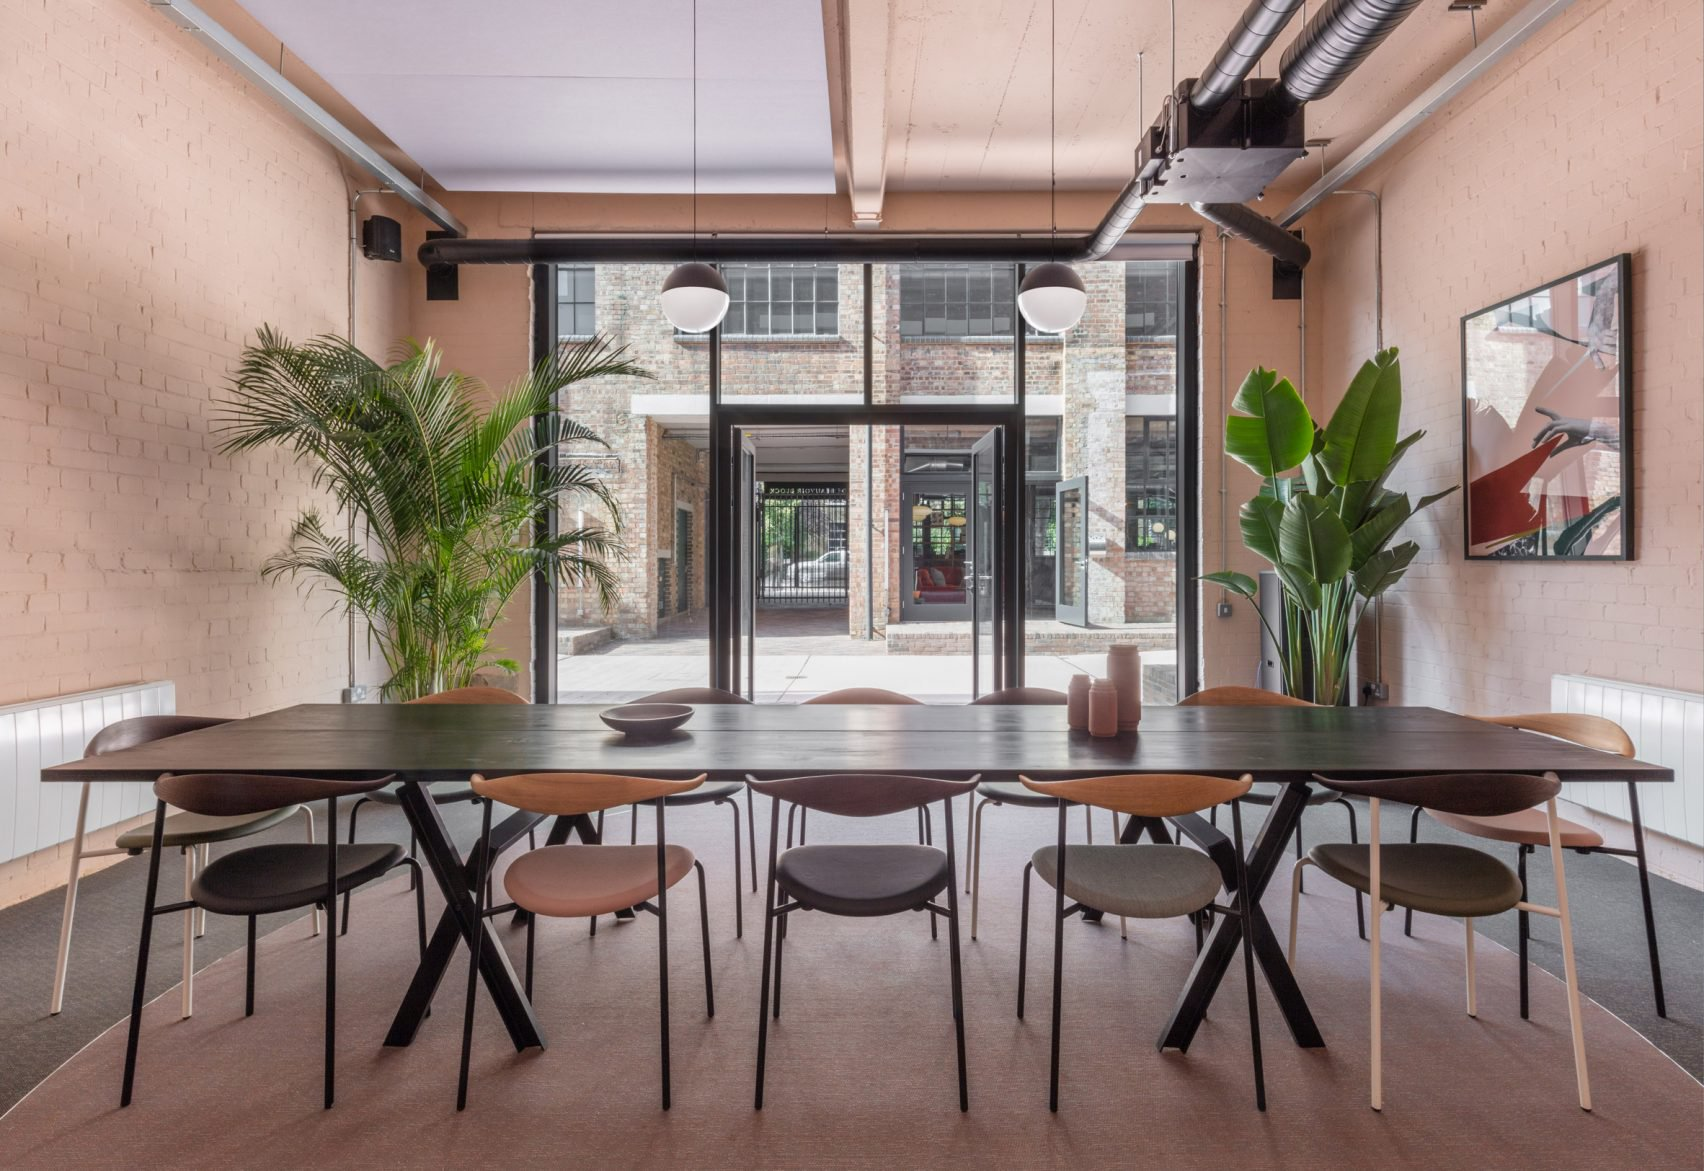 Office Space Design With Creative Inspiration In East London! 5 office space design Office Space Design With Creative Inspiration In East London! Office Space Design With Creative Inspiration In East London 5